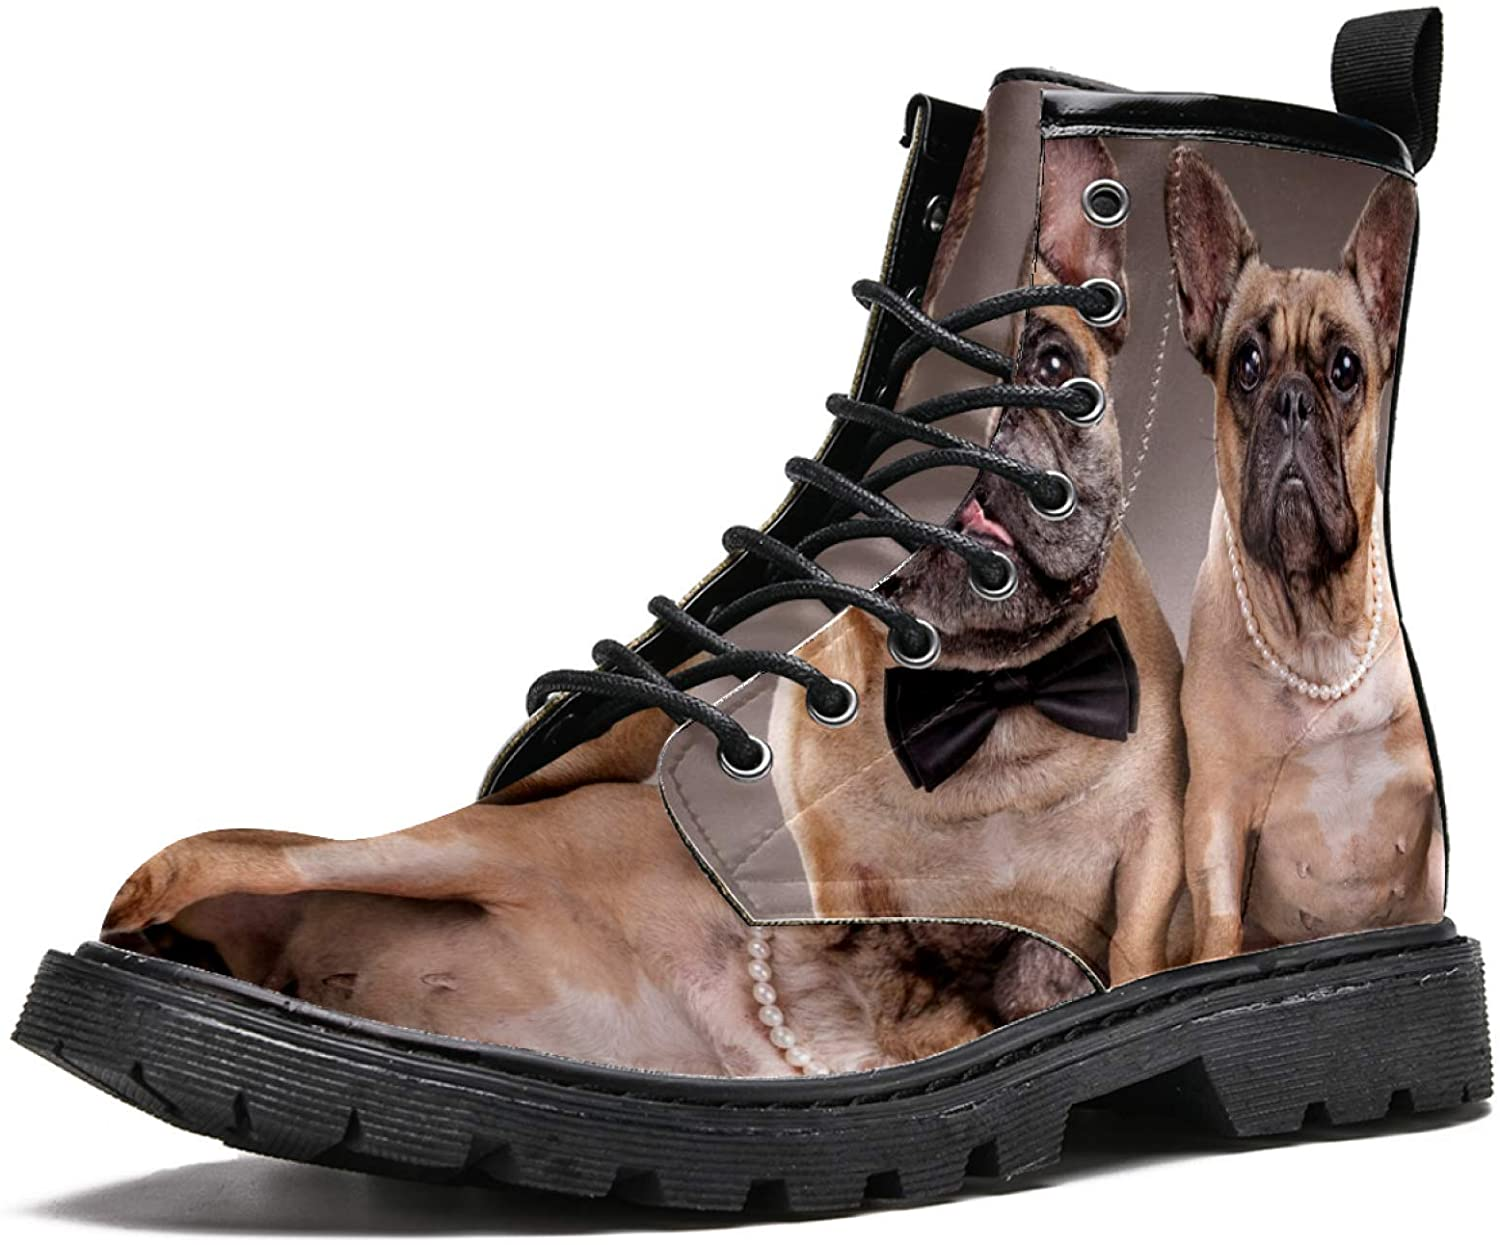 LORVIES Bulldogs Men's High Top Boots Lace Up Casual Leather Ankle Shoes